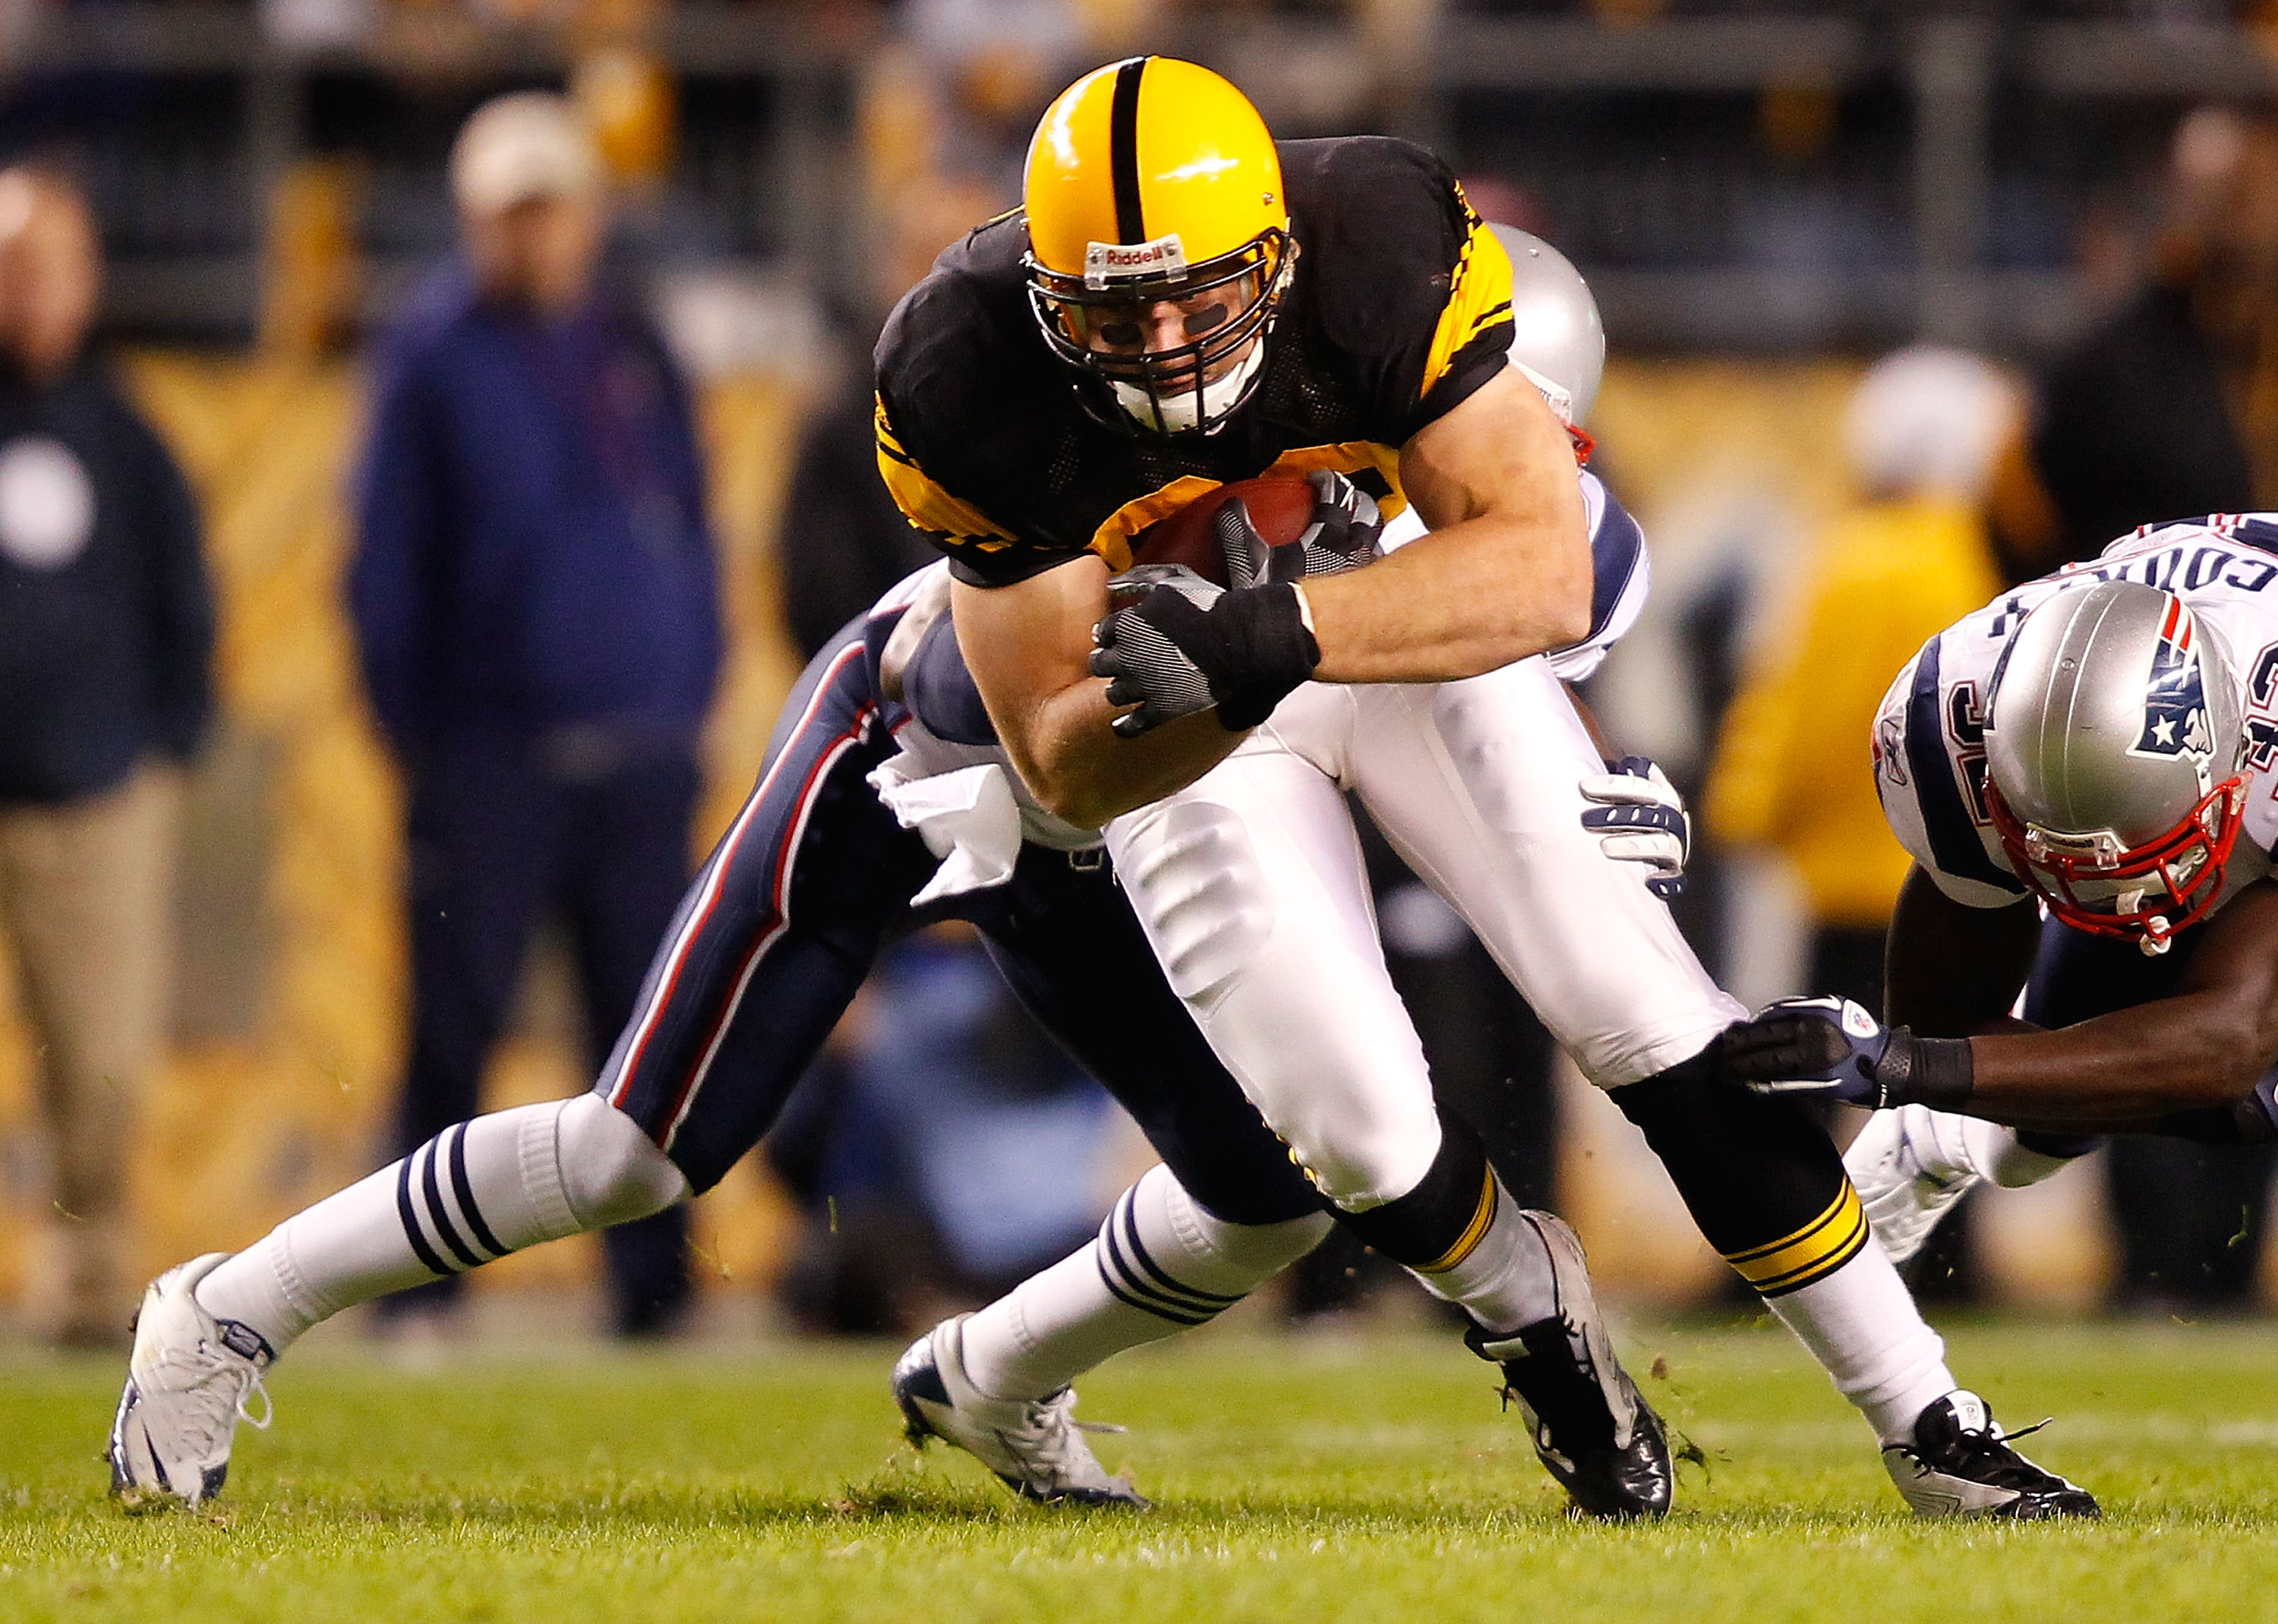 PITTSBURGH, PA - NOVEMBER 14:  Heath Miller #83 of the Pittsburgh Steelers runs with the ball against the New England Patriots during the game on November 14, 2010 at Heinz Field in Pittsburgh, Pennsylvania.  (Photo by Jared Wickerham/Getty Images)